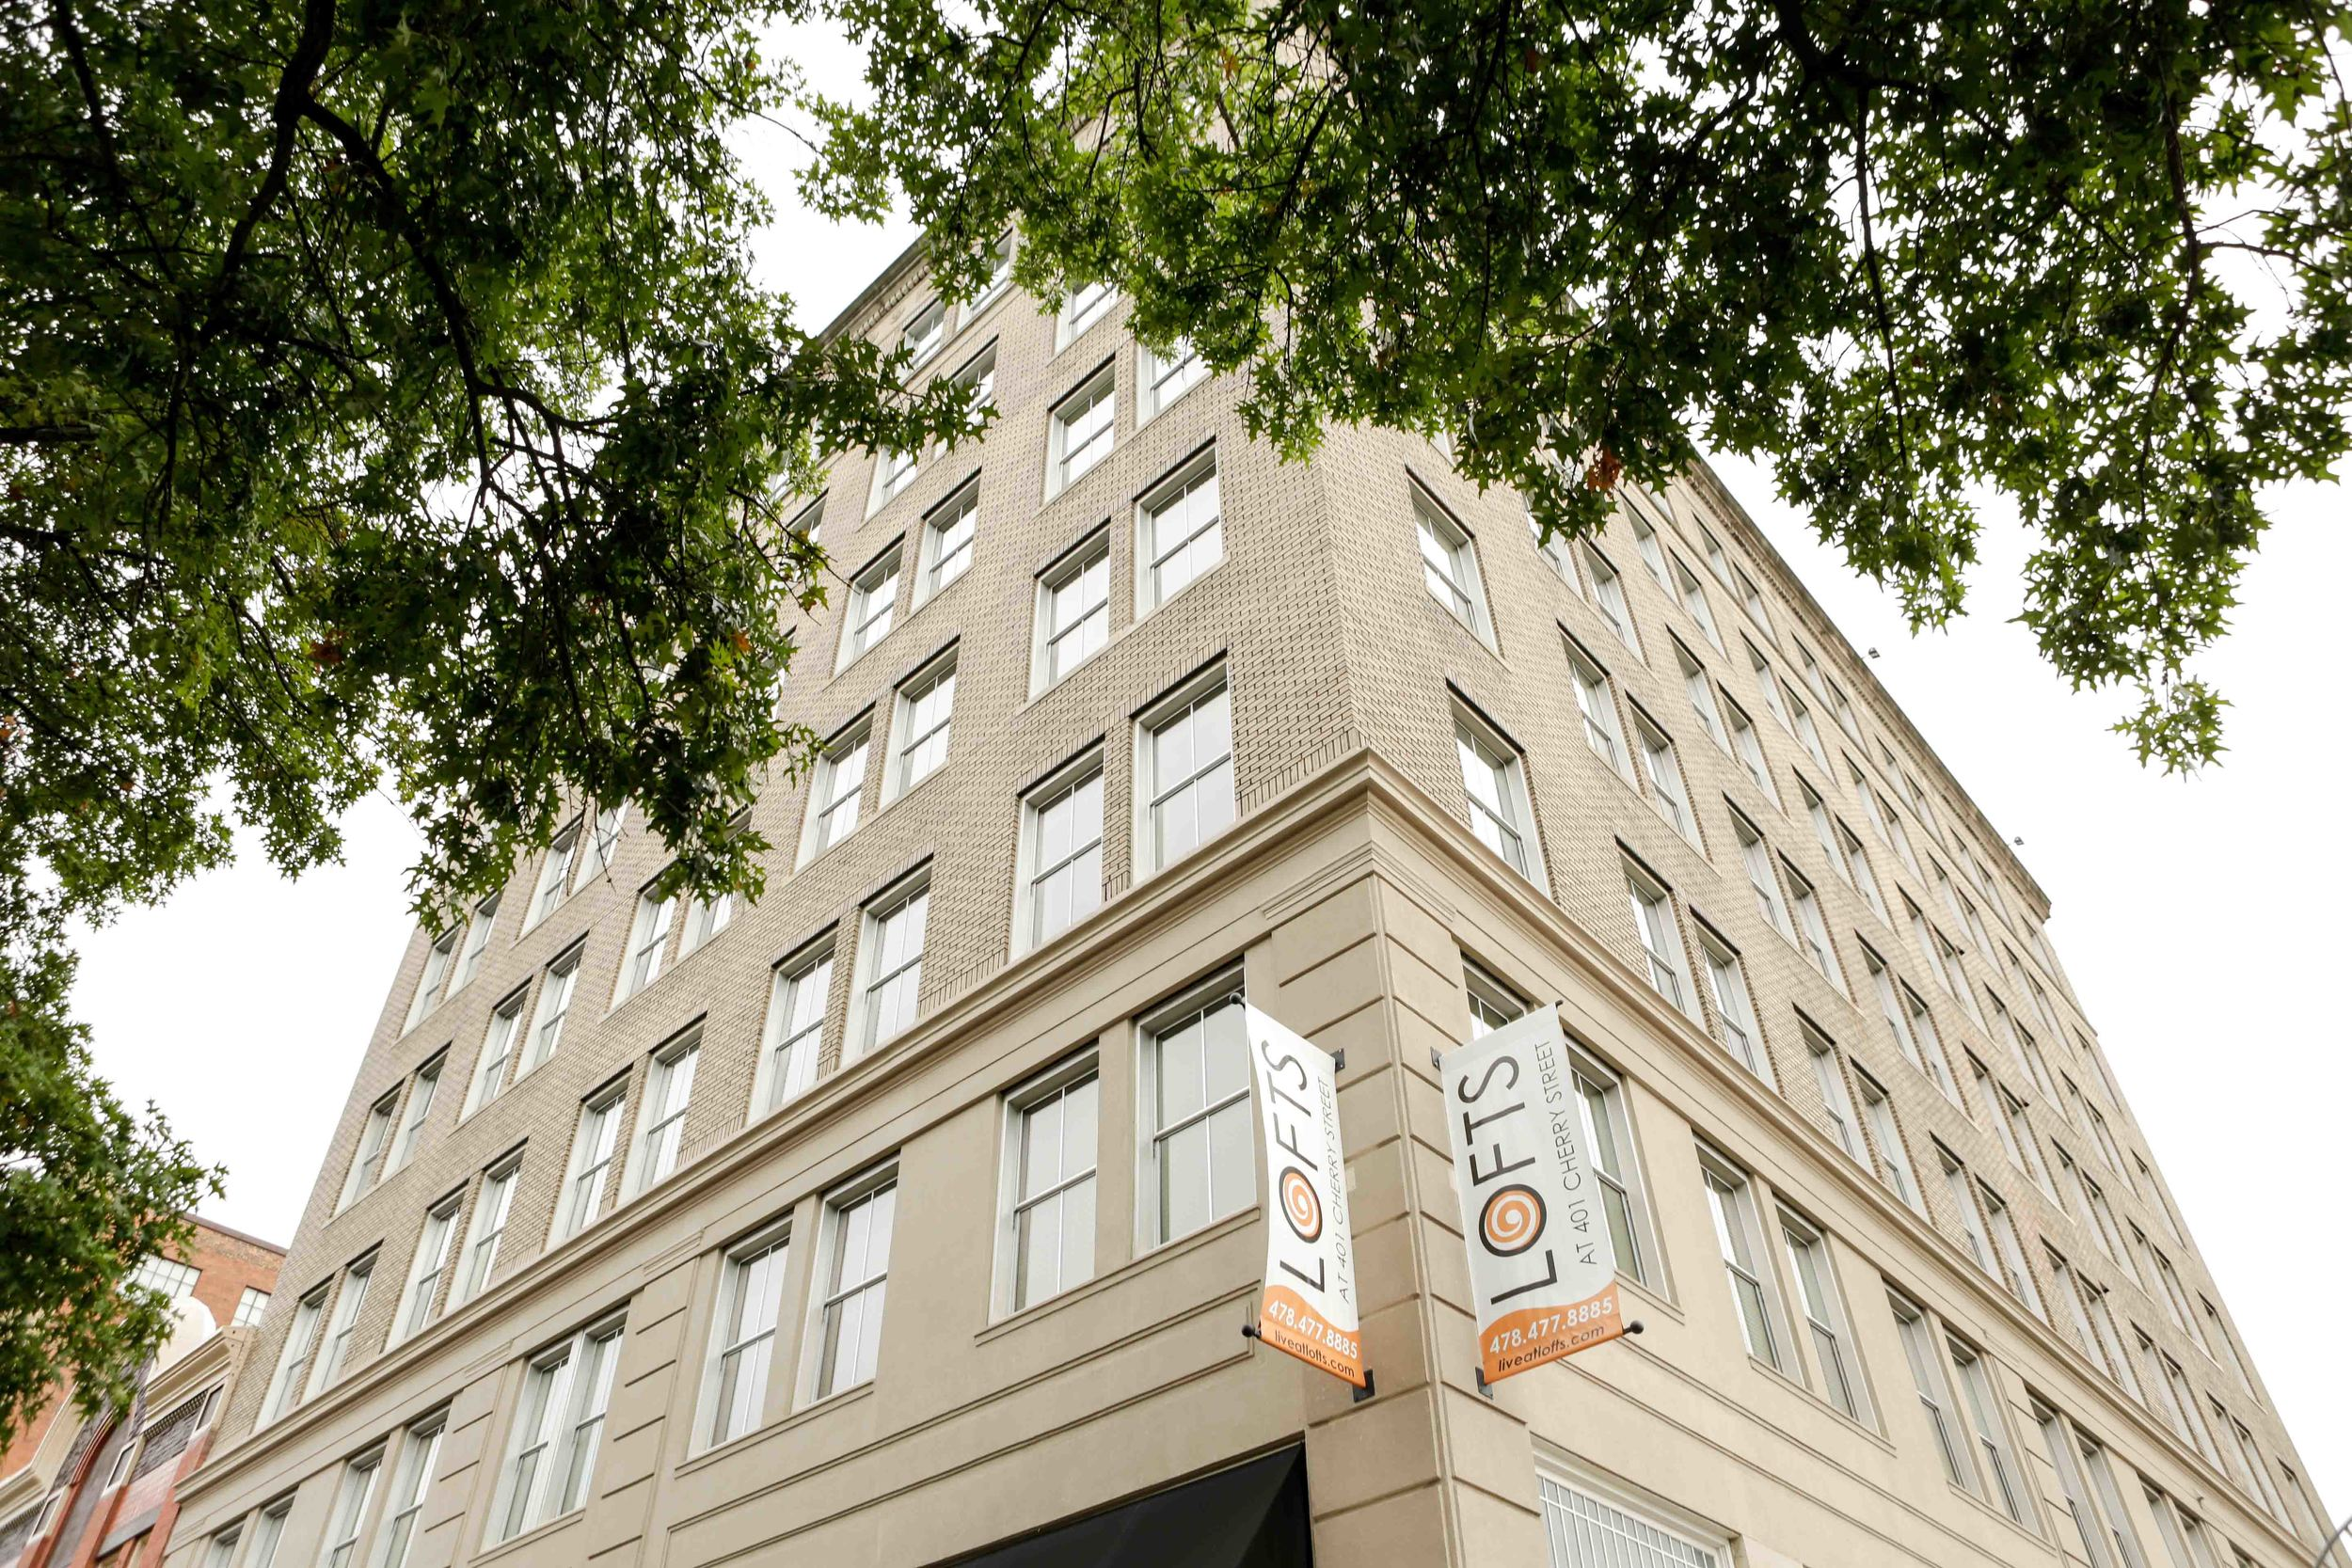 Apartments in Downtown Macon, GA